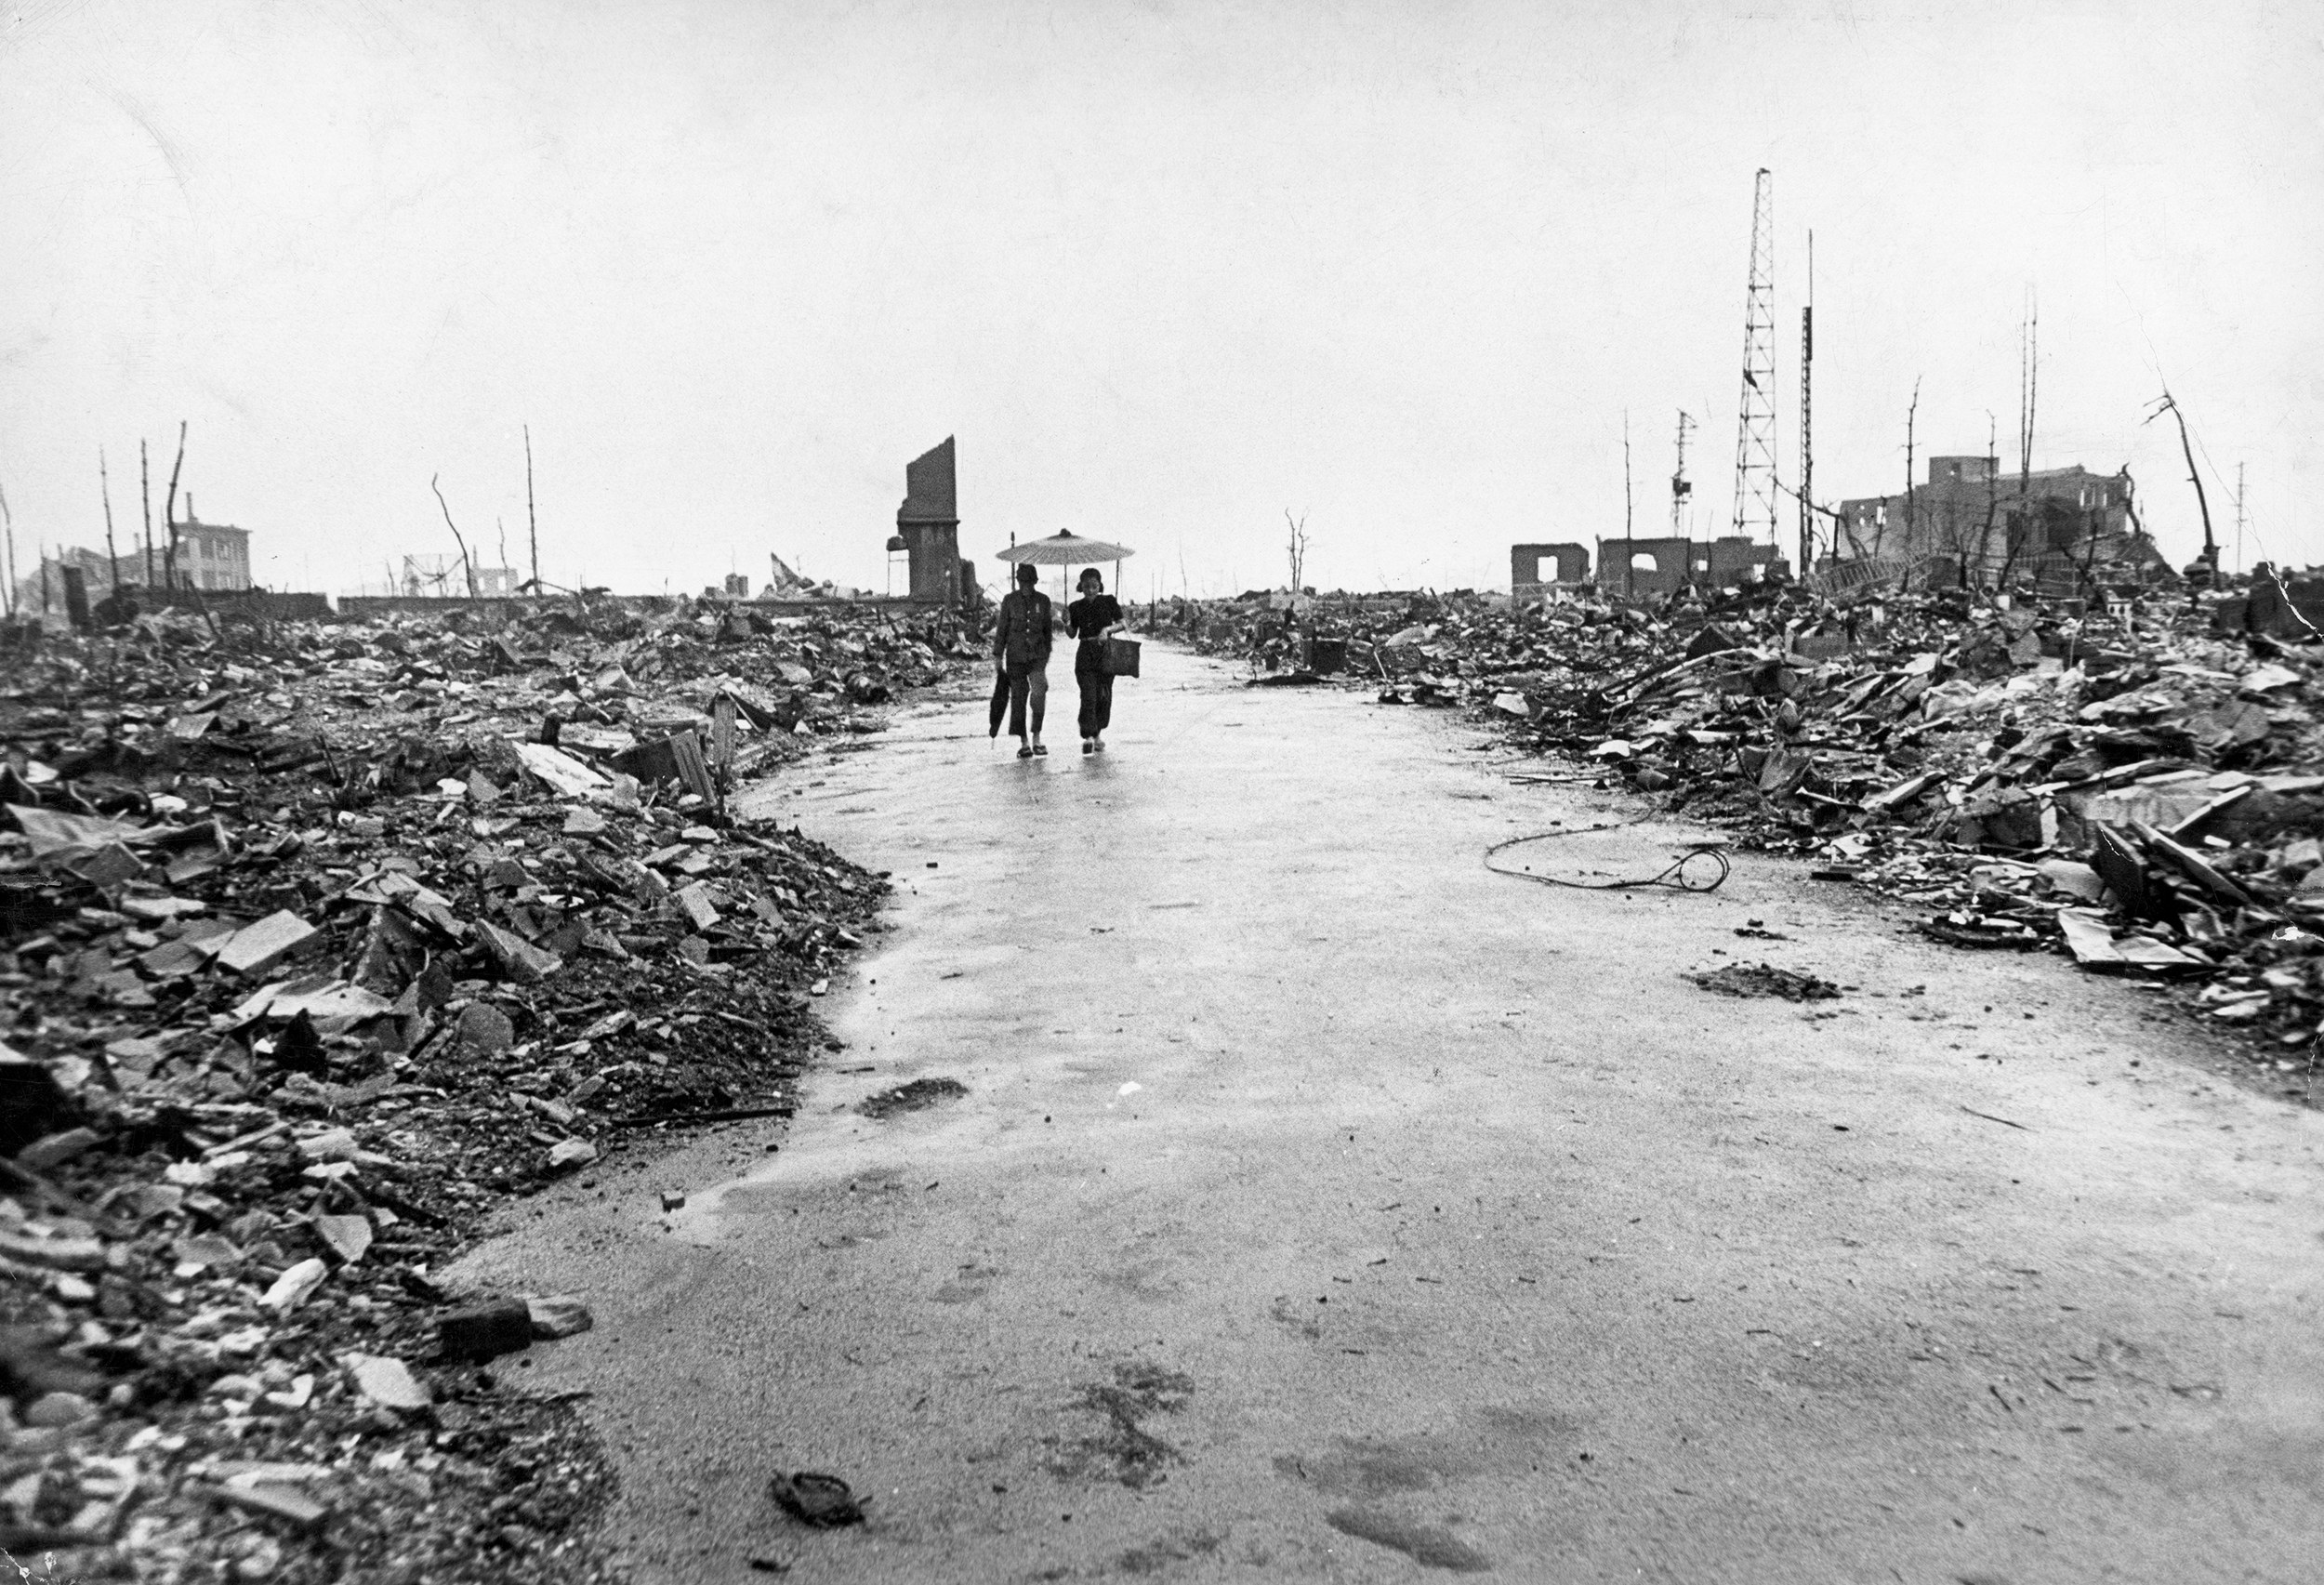 Two people, one carrying an umbrella, walk down a street of rubble.